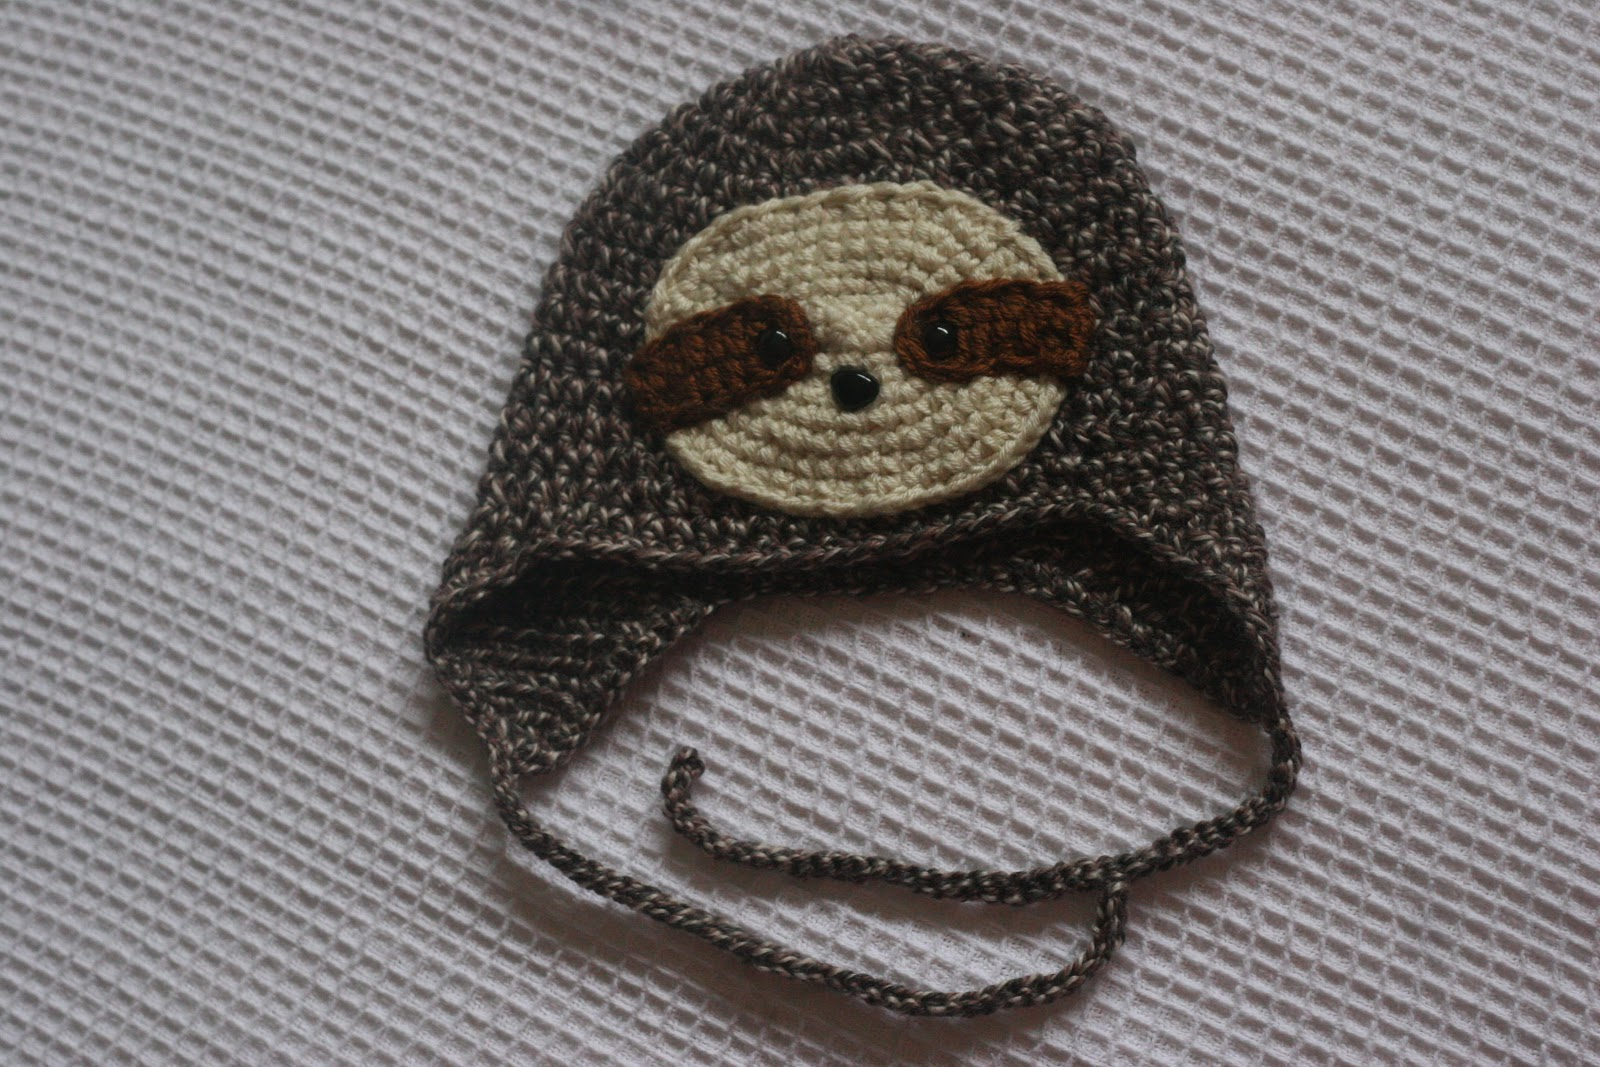 Once the pattern is finished i ll pop it here in this post so you can all  make your own little Sloth hat. f4f3f3f2c6f